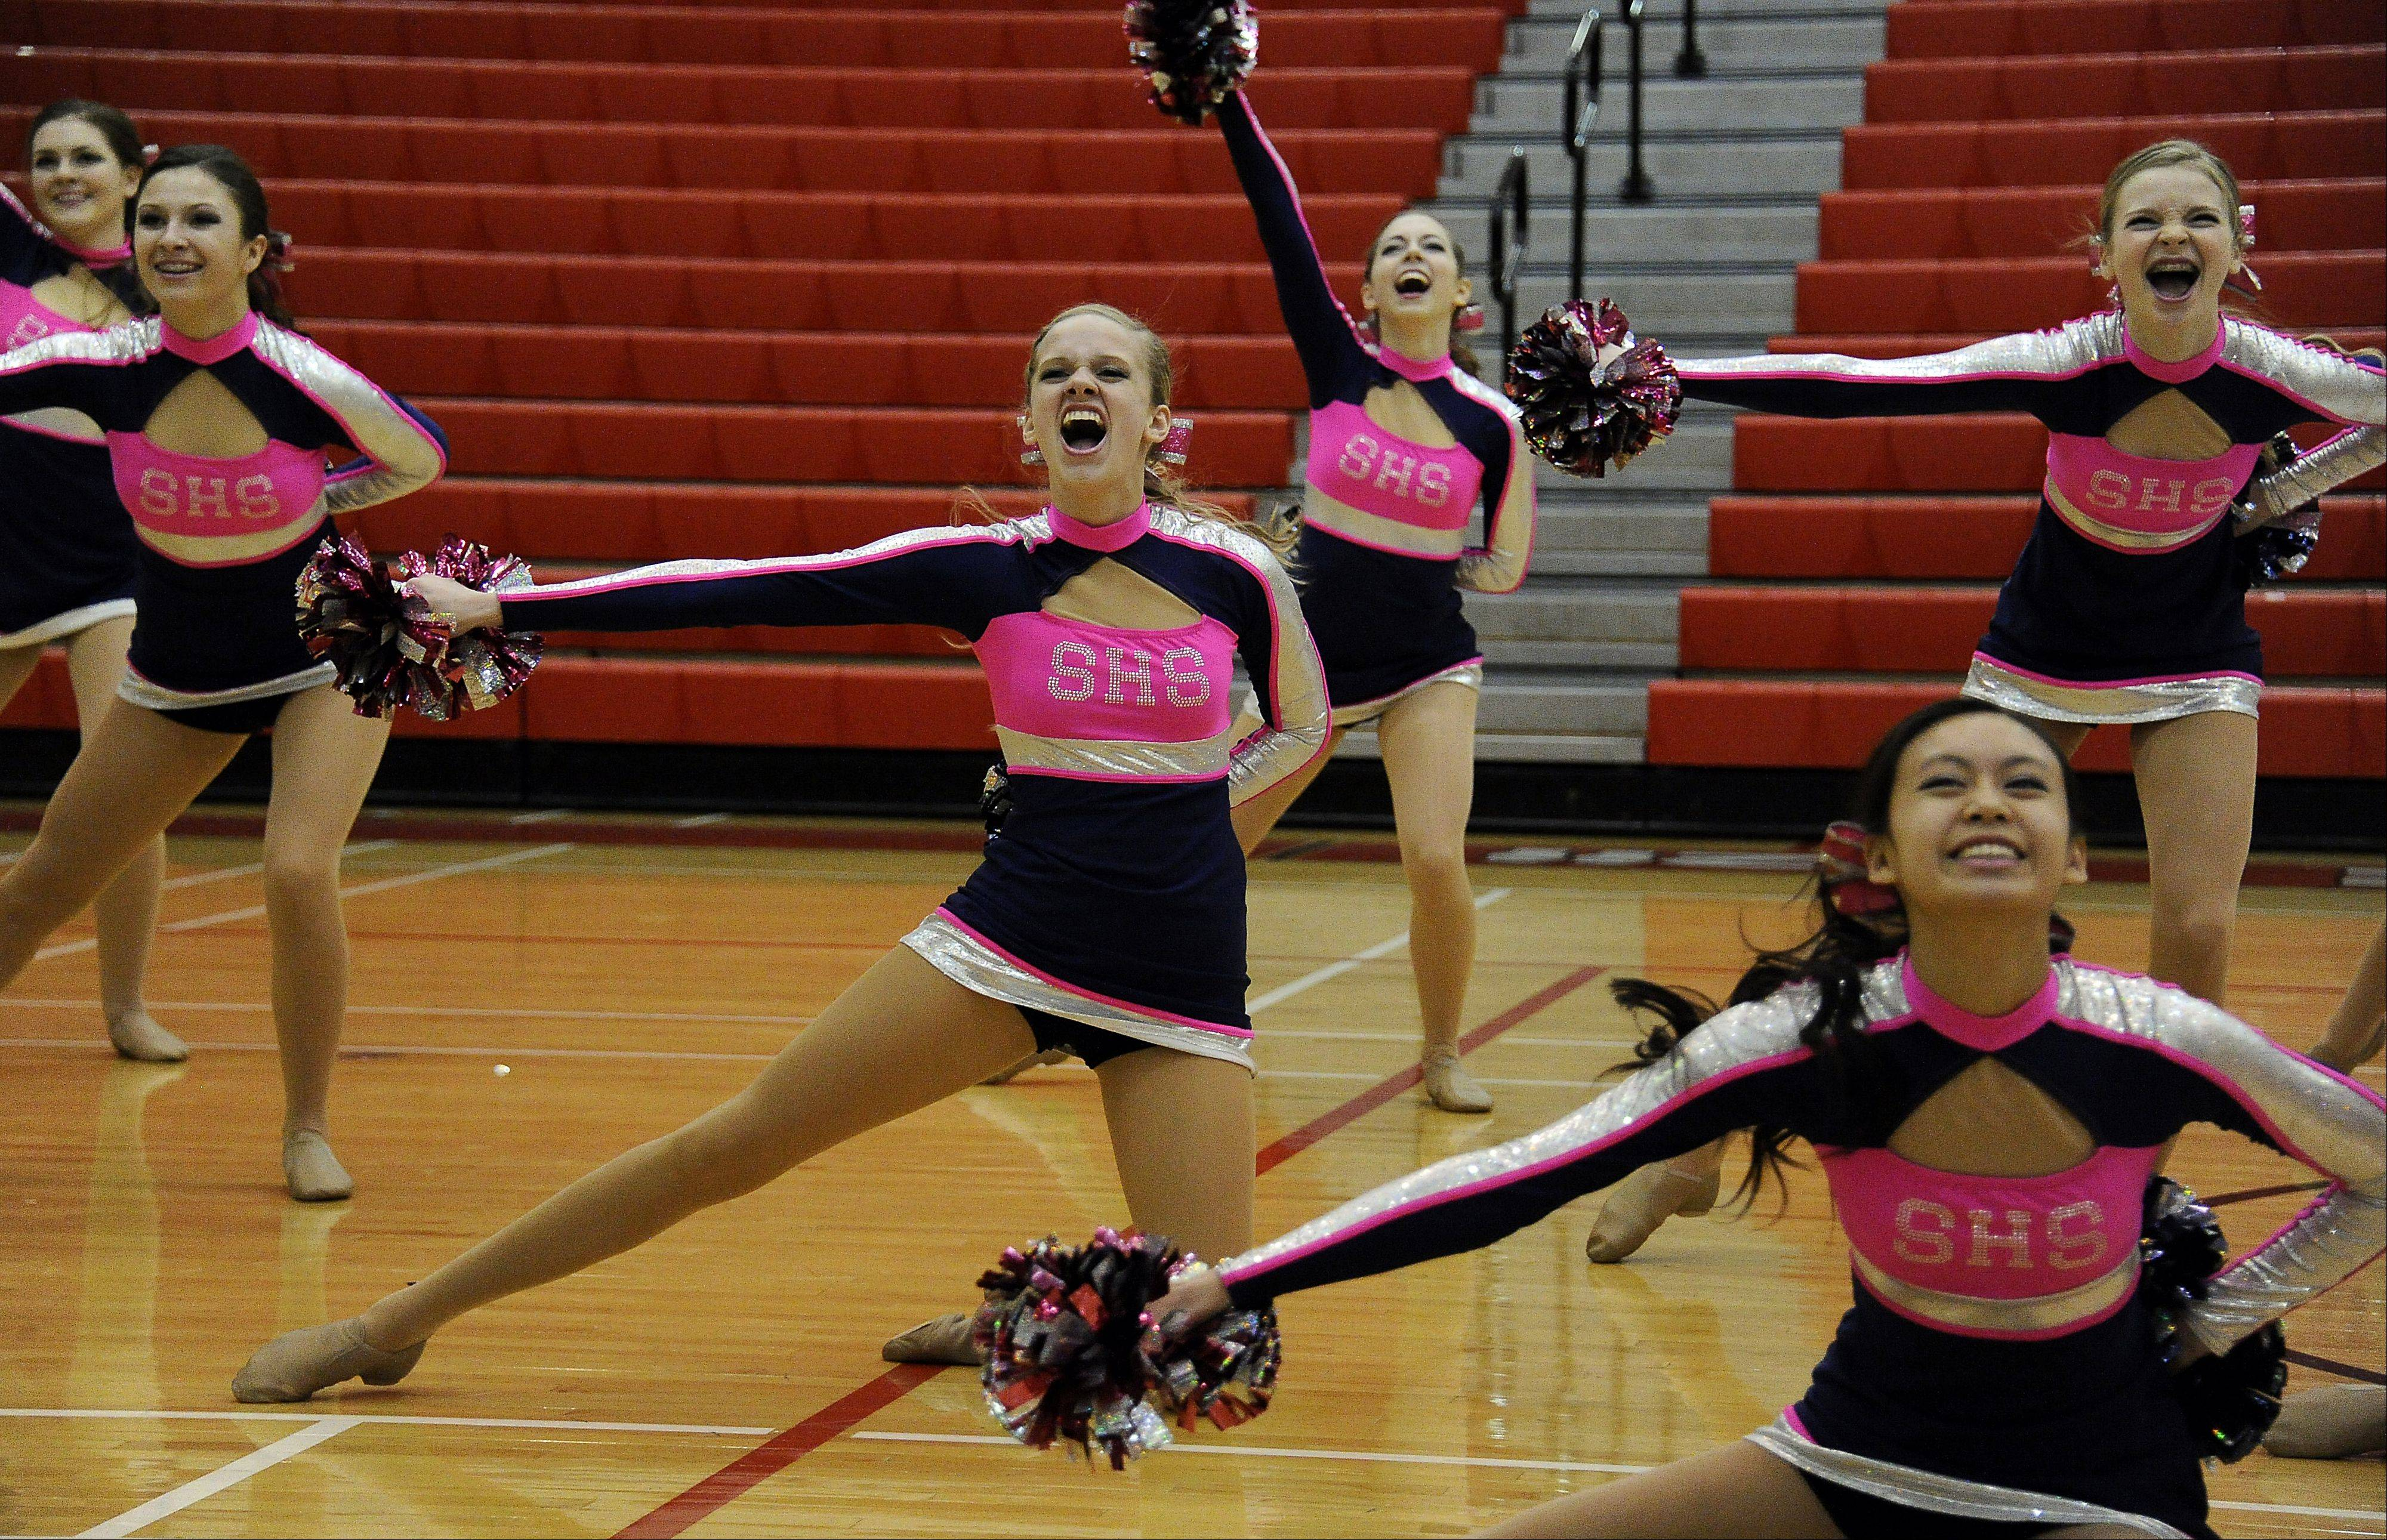 Dancing in the (2A) division are members of Schaumburg High School dance squad with Lauren Birkholz (center) leading the way in the 1st annual Sectional Competition at Palatine High School on Saturday.